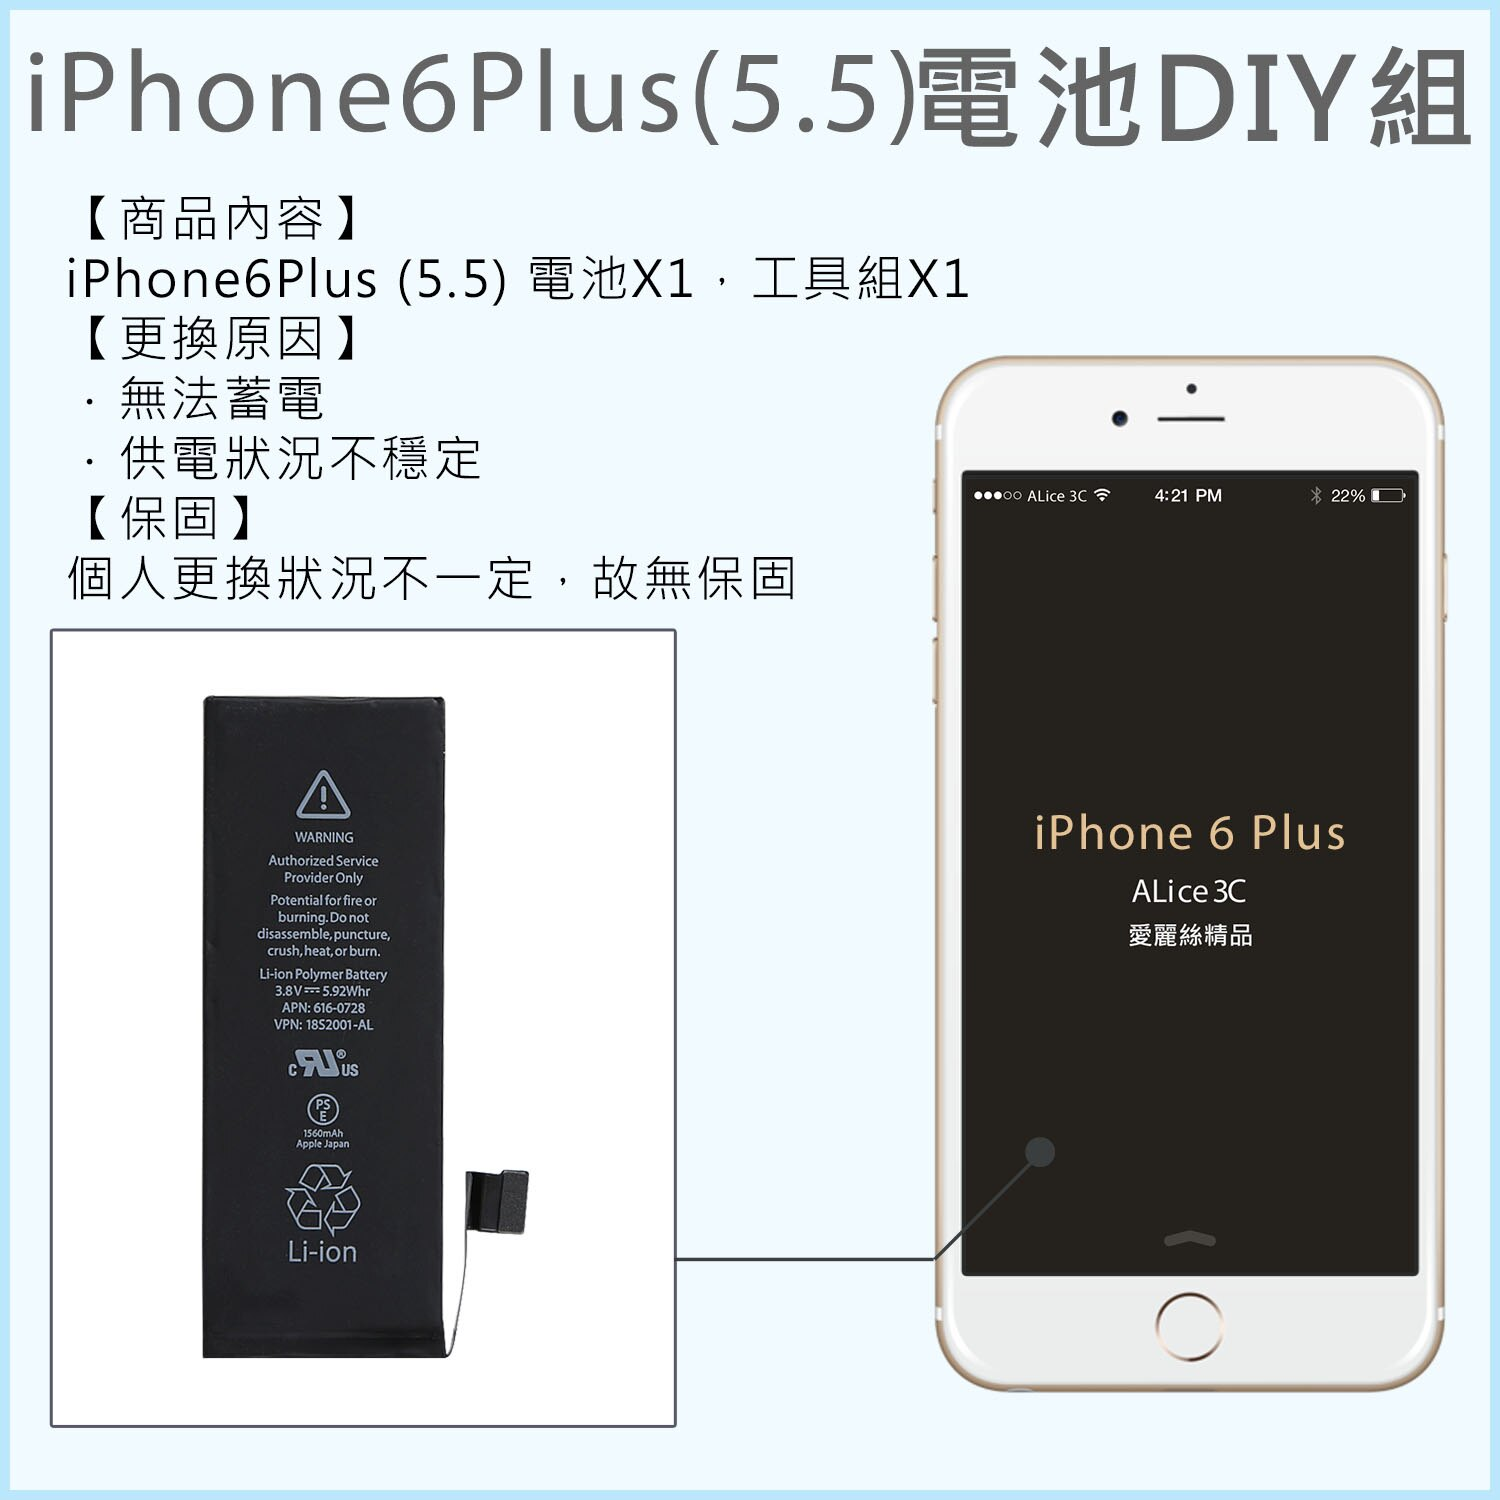 APPLE iPhone 6 Plus 5.5吋 電池 全新零循環 【D-OT-080】 贈工具組 DIY價 Alice3C